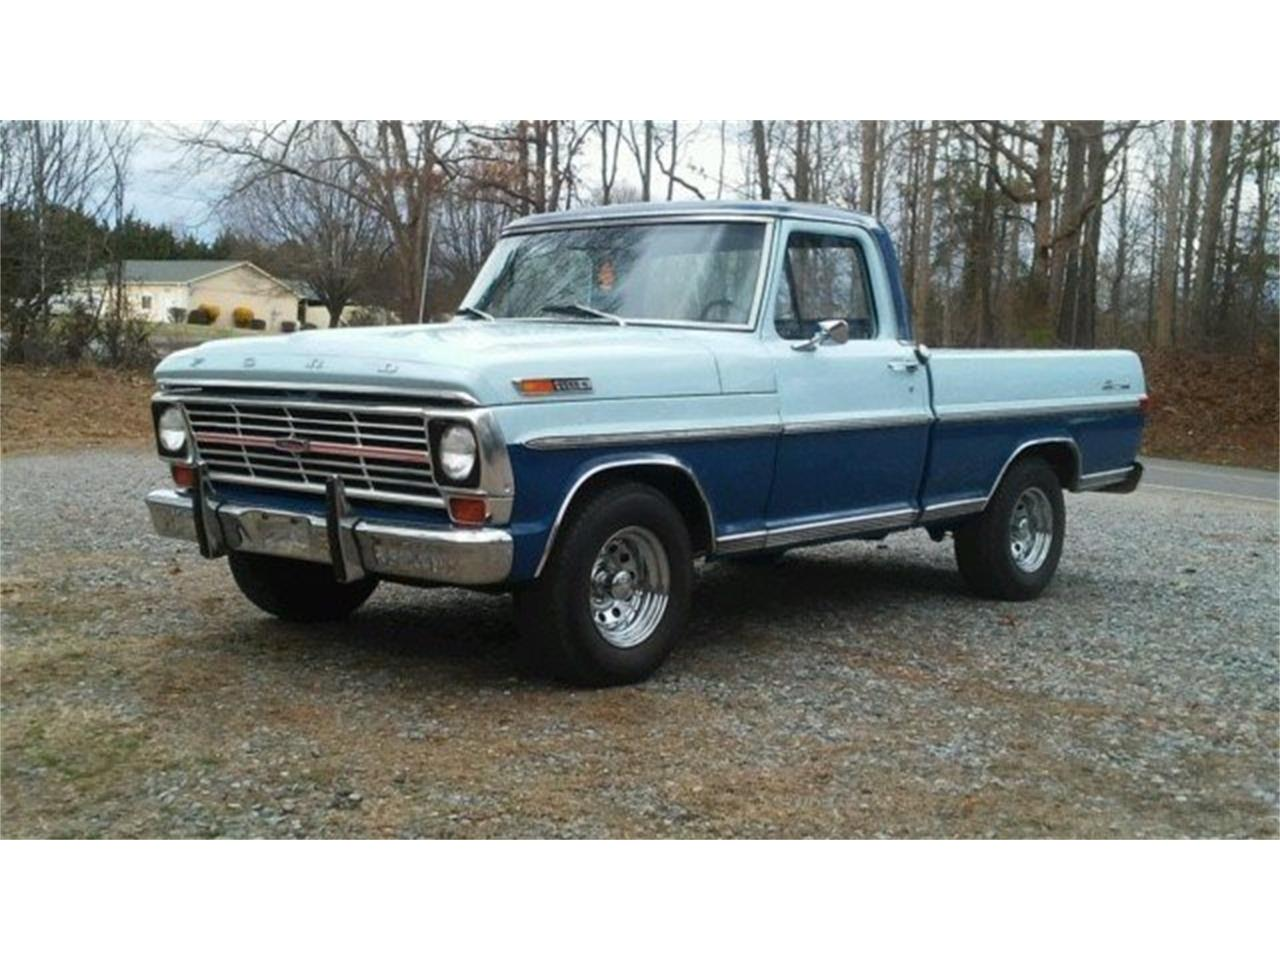 1969 Ford F100 For Sale Cc 1068426 Short Bed Large Picture Of Auction Vehicle Offered By Gaa Classic Cars Auctions Mwei